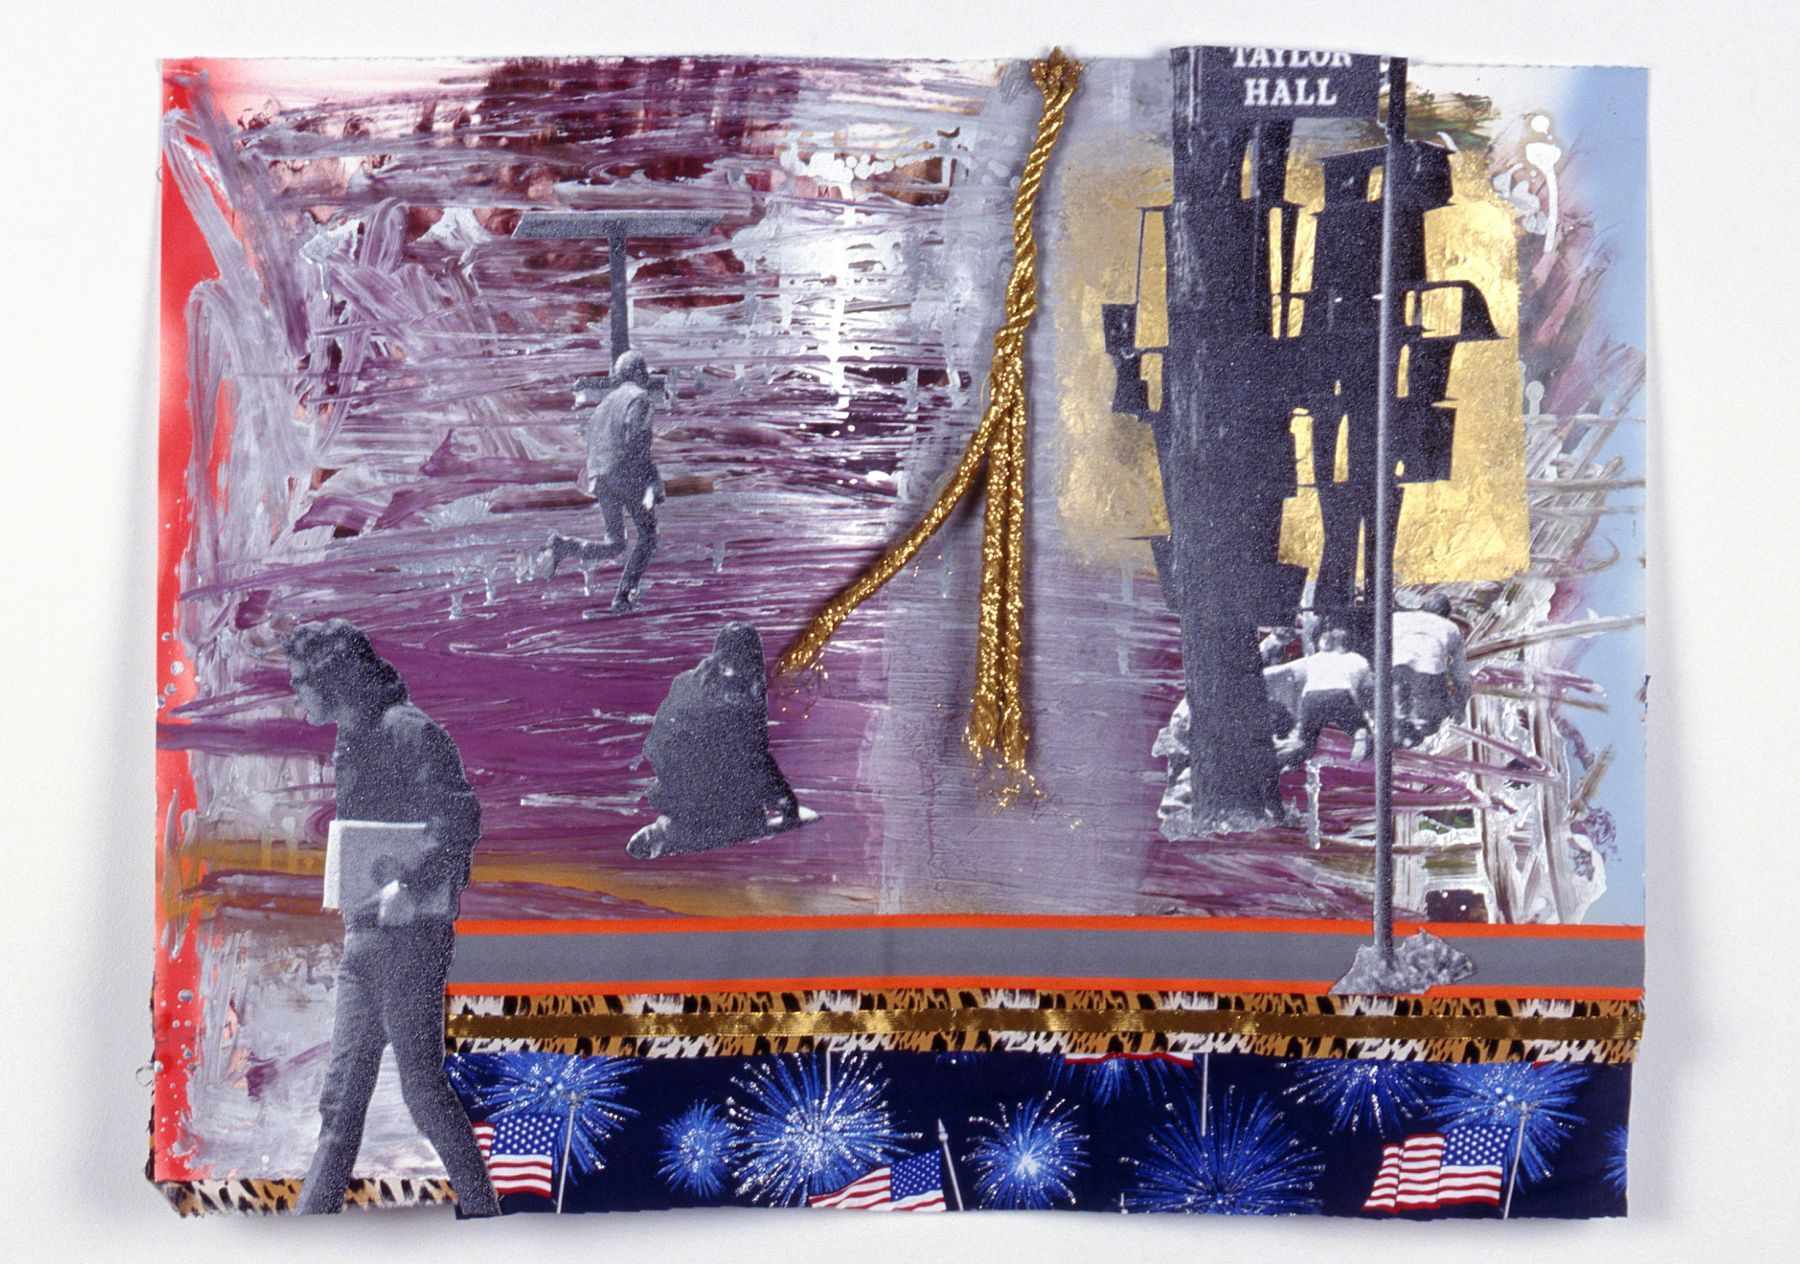 Ohio Heart of it All II, ca. 2005, mixed media on paper